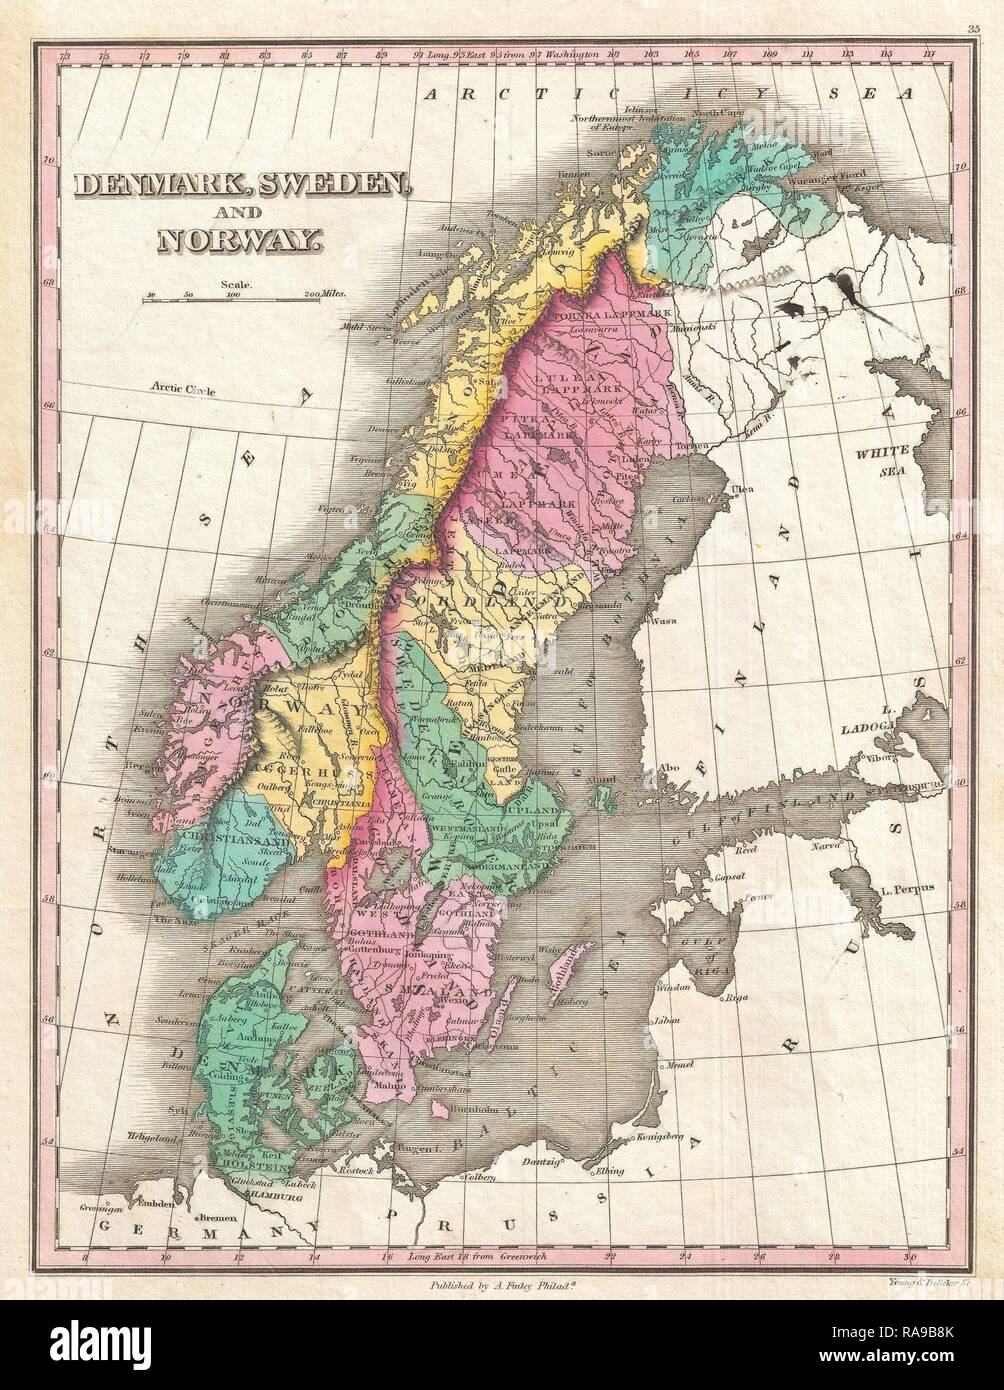 19th Century Norway Map Stock Photos & 19th Century Norway ... on